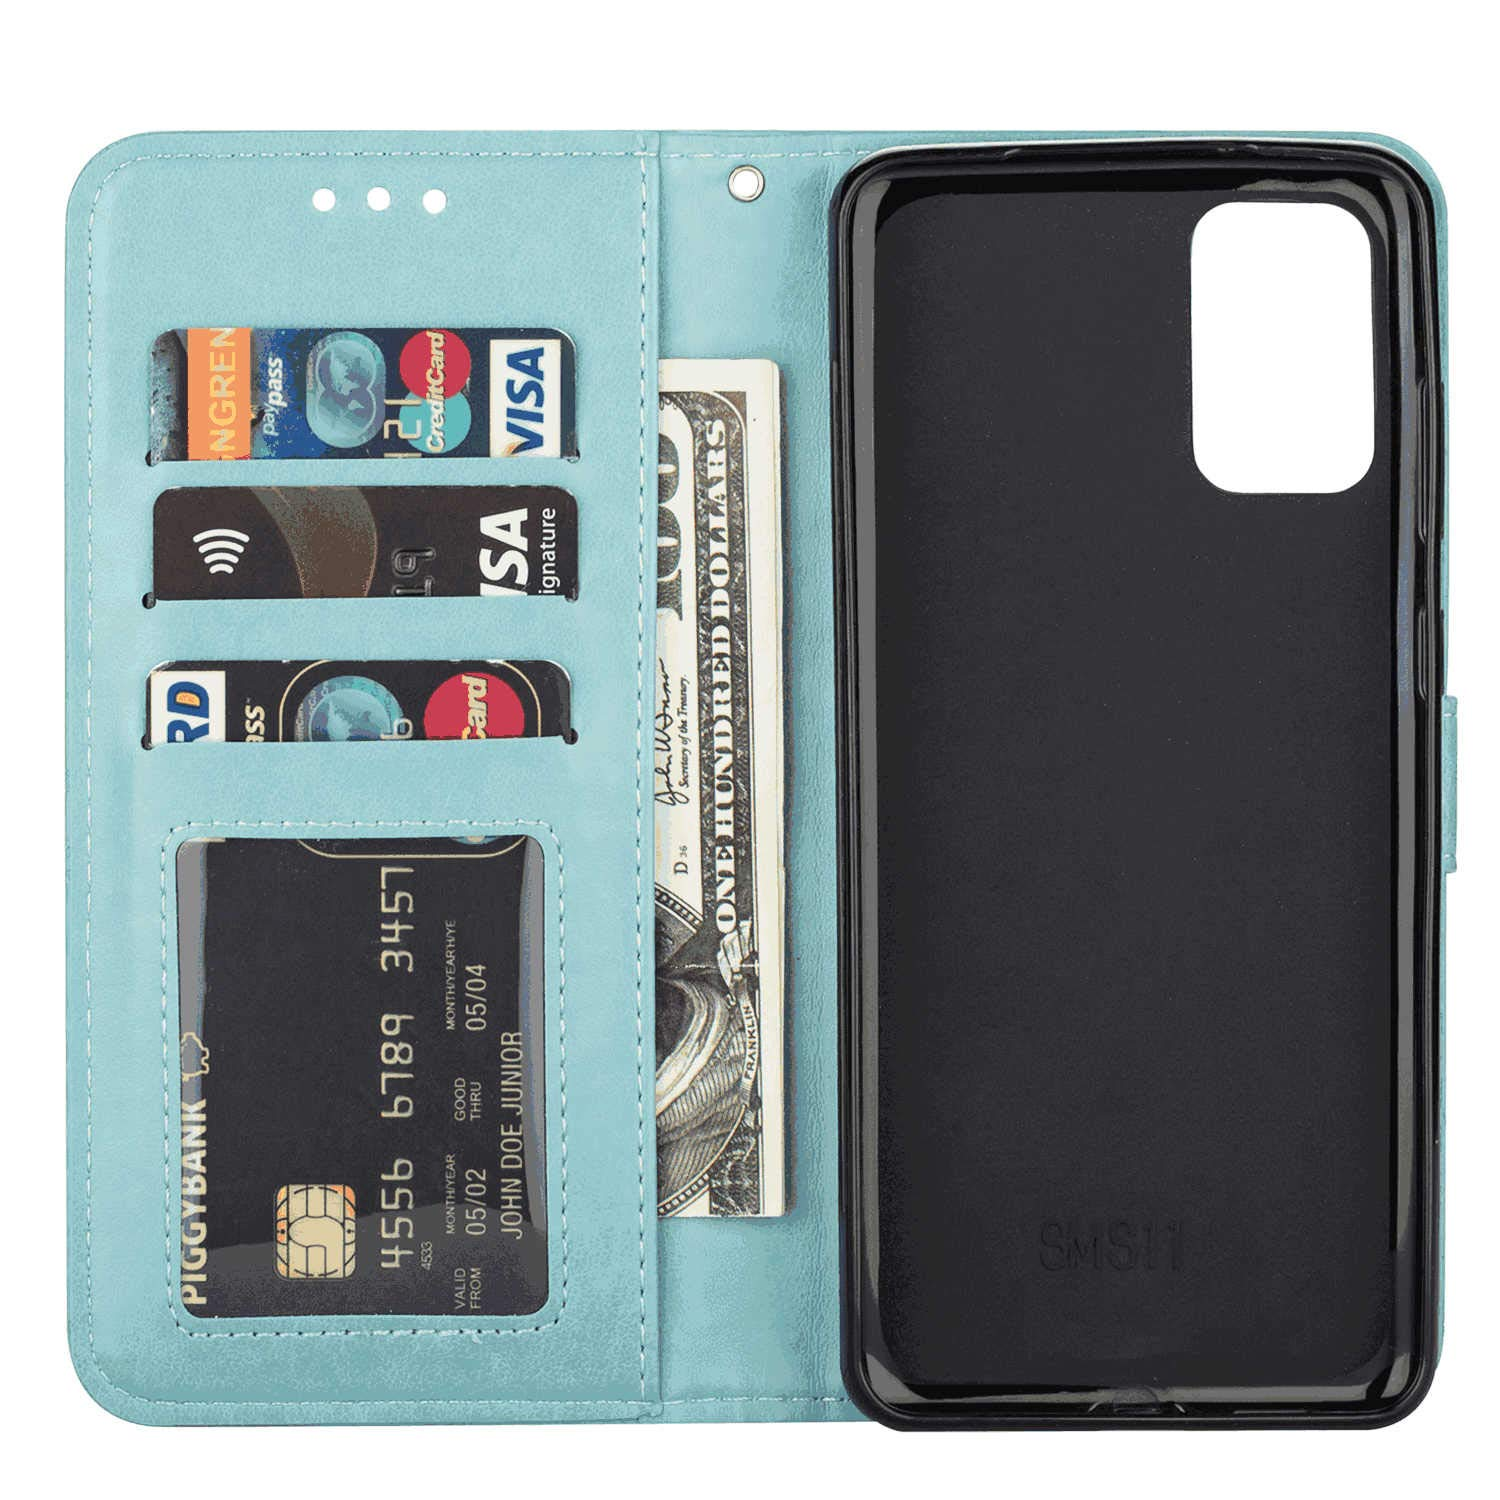 Stylish Cover Compatible with Samsung Galaxy S10 5G Green Leather Flip Case Wallet for Samsung Galaxy S10 5G